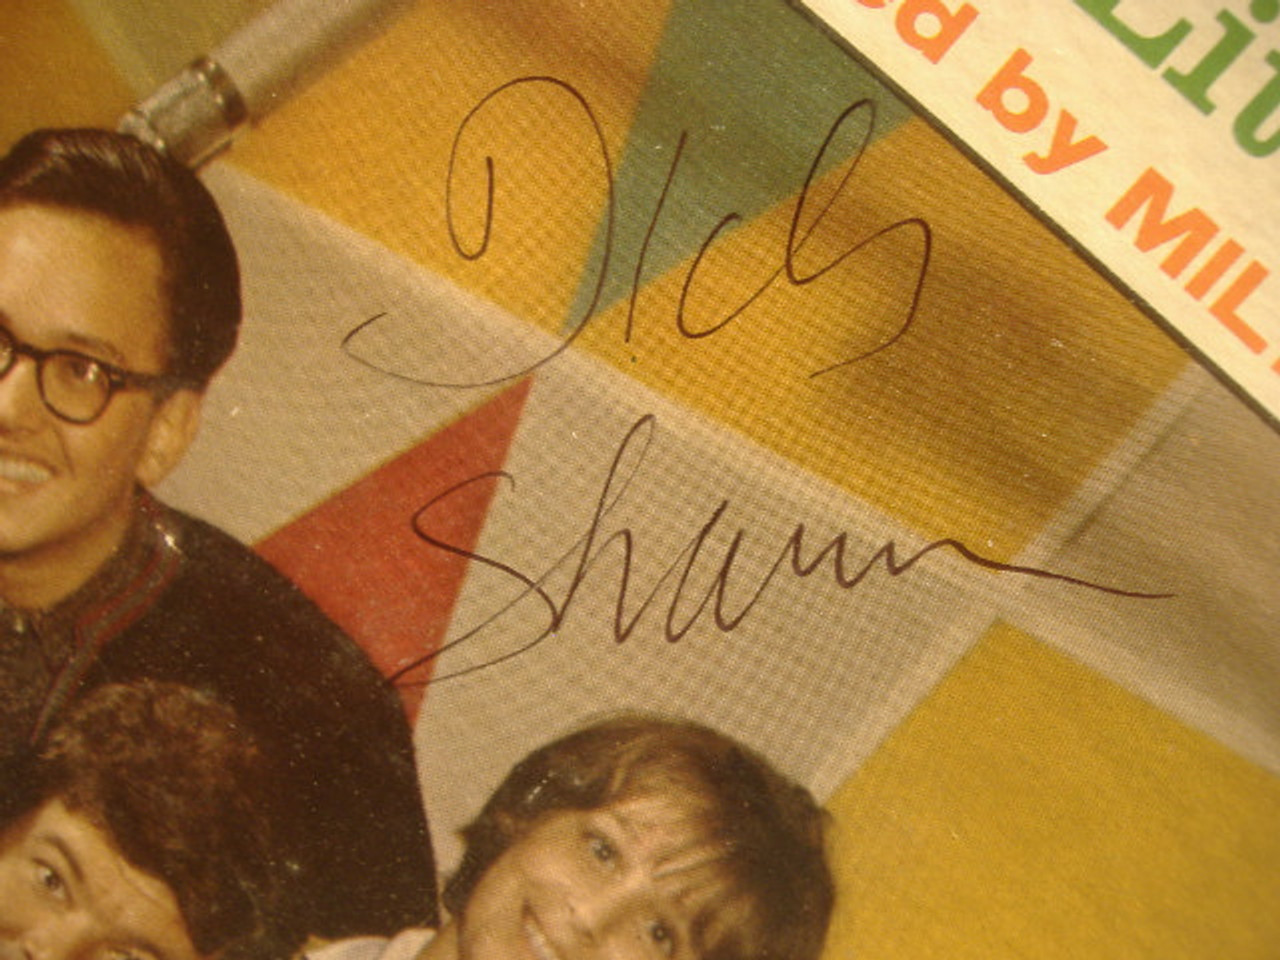 Shawn, Dick LP Signed Autograph Sings With His Little People